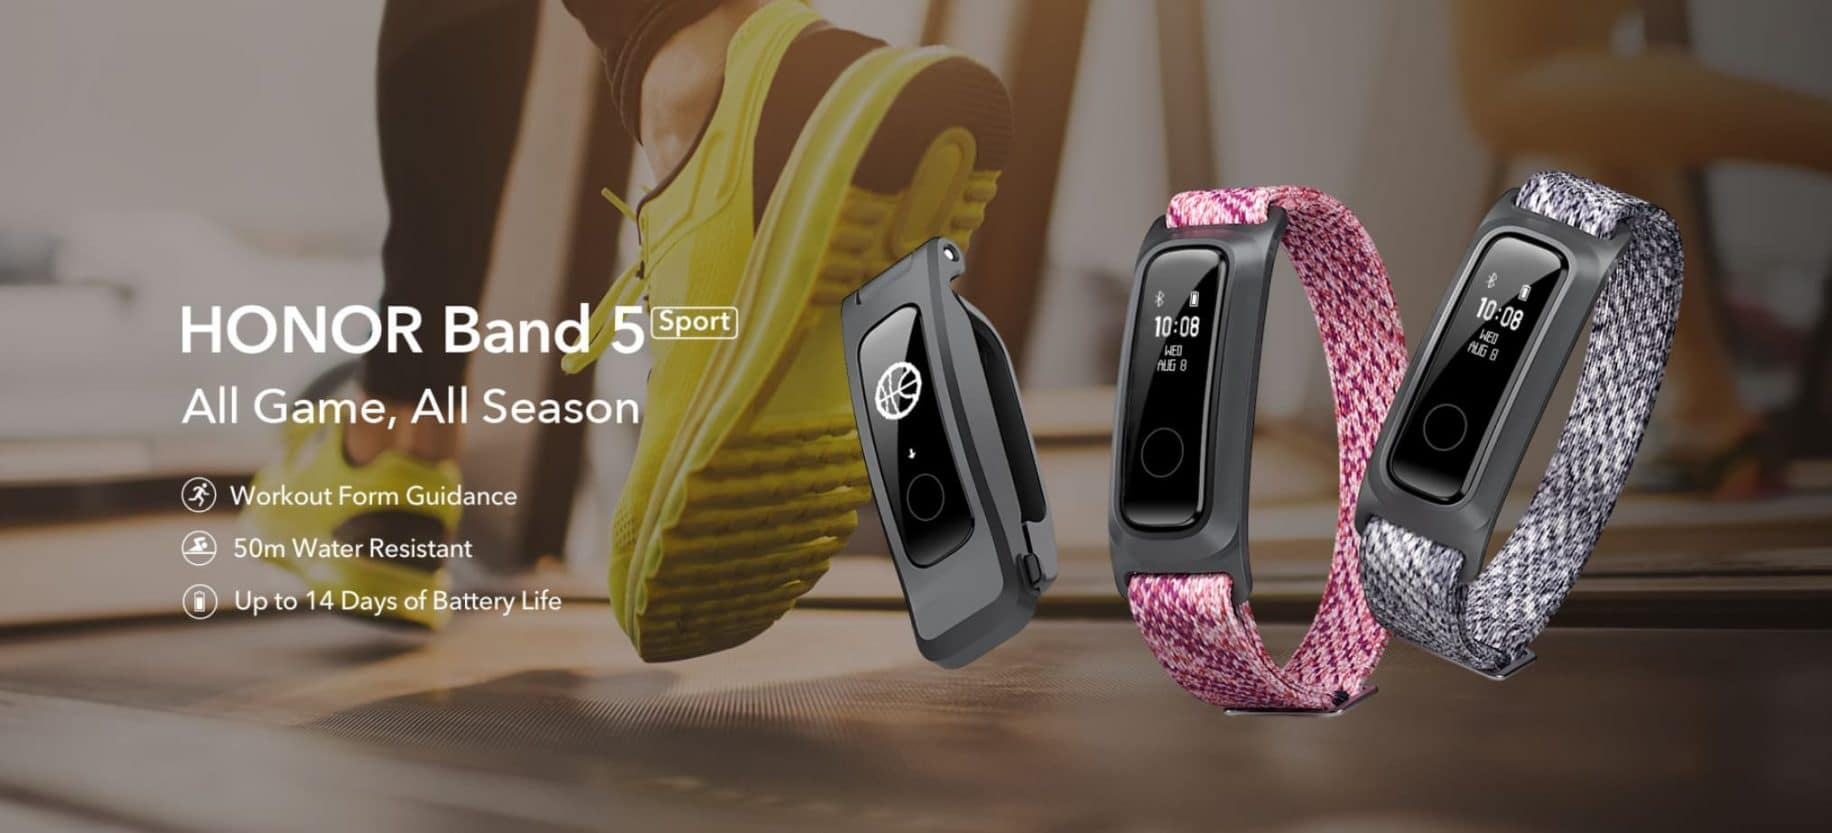 huawei fitness band 5 sport